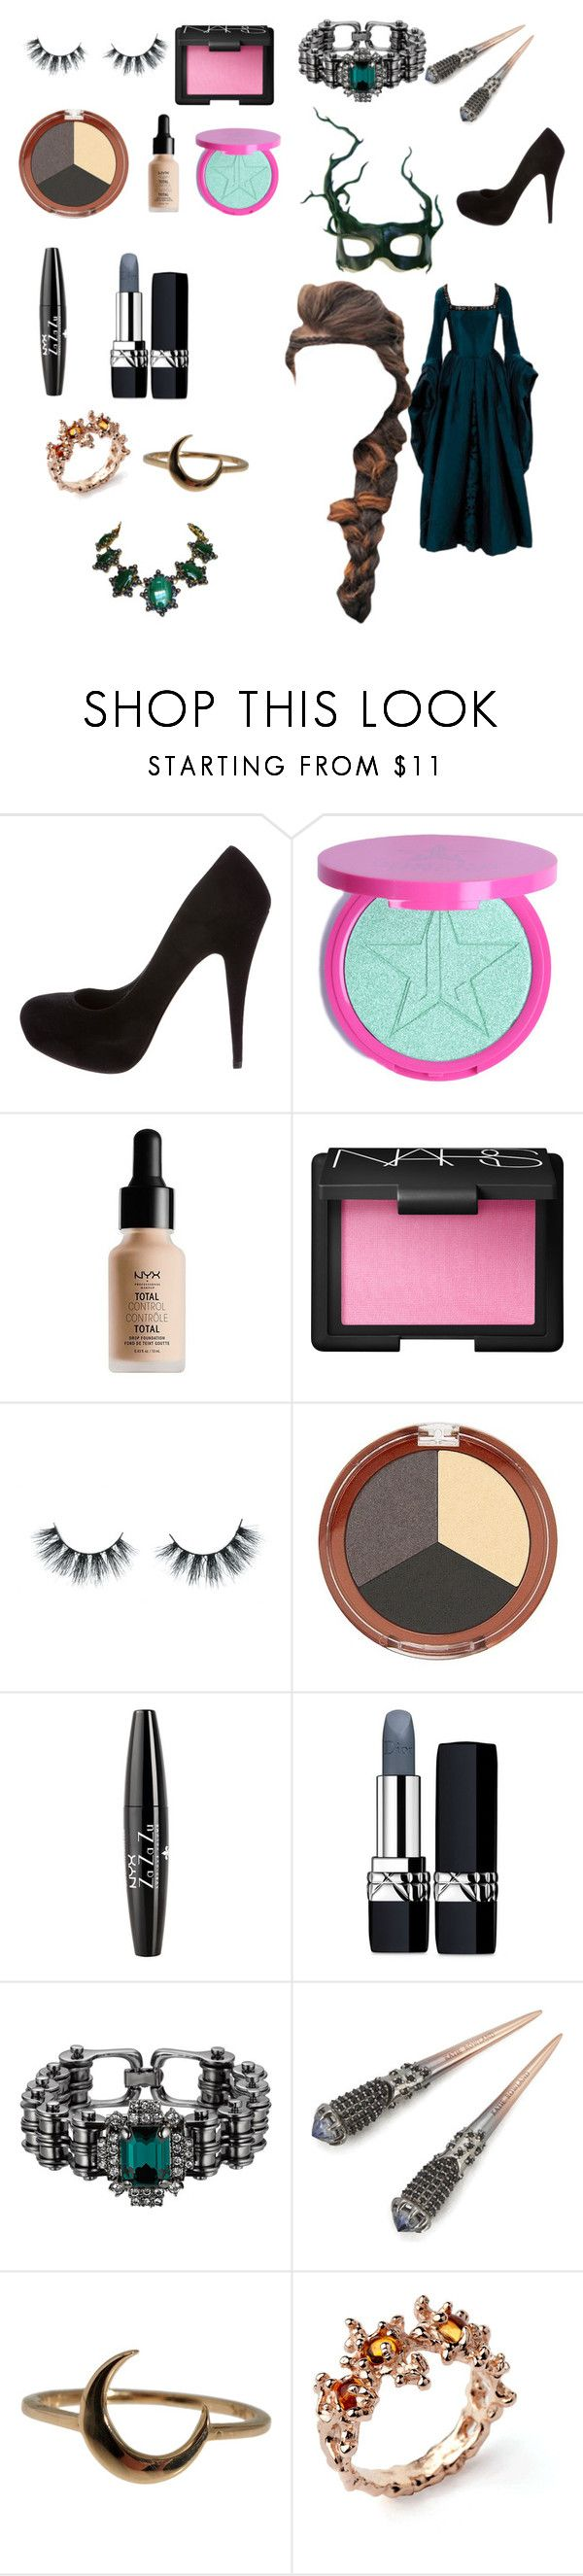 """Sammi McCall's Halloween mascaraed ball"" by samtiritilli ❤ liked on Polyvore featuring Masquerade, Miu Miu, NYX, NARS Cosmetics, Unicorn Lashes, Mineral Fusion, Christian Dior, Mawi, Katie Rowland and Lulu Frost"